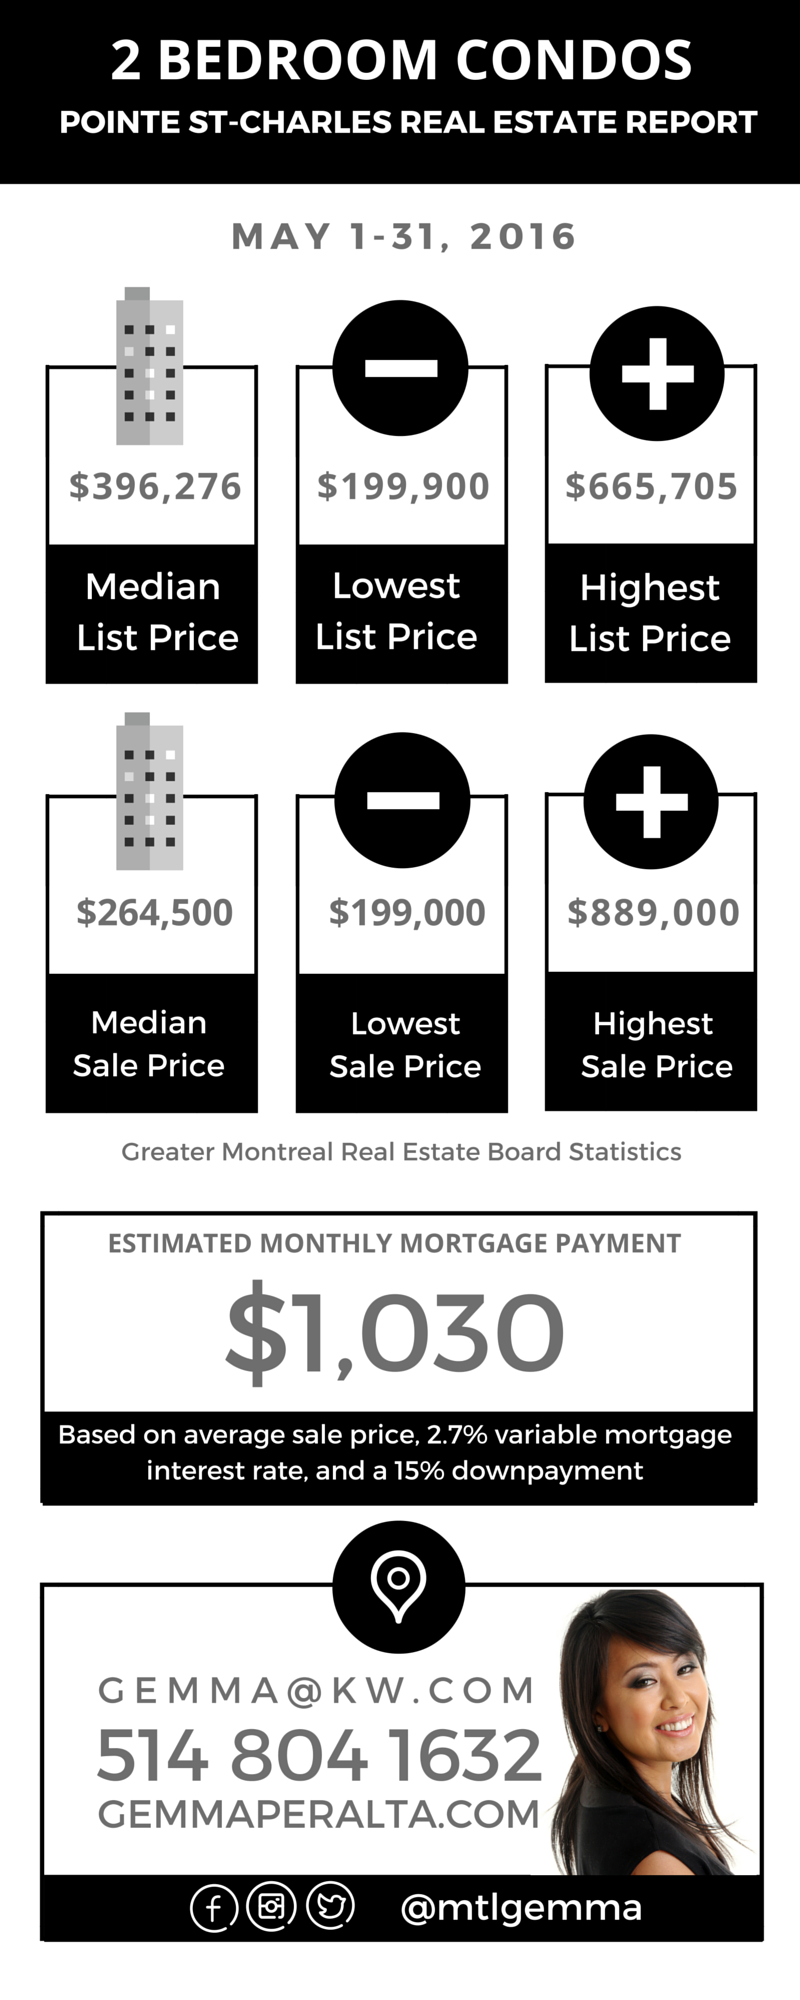 Pointe St-Charles Real Estate Report May 2016 03